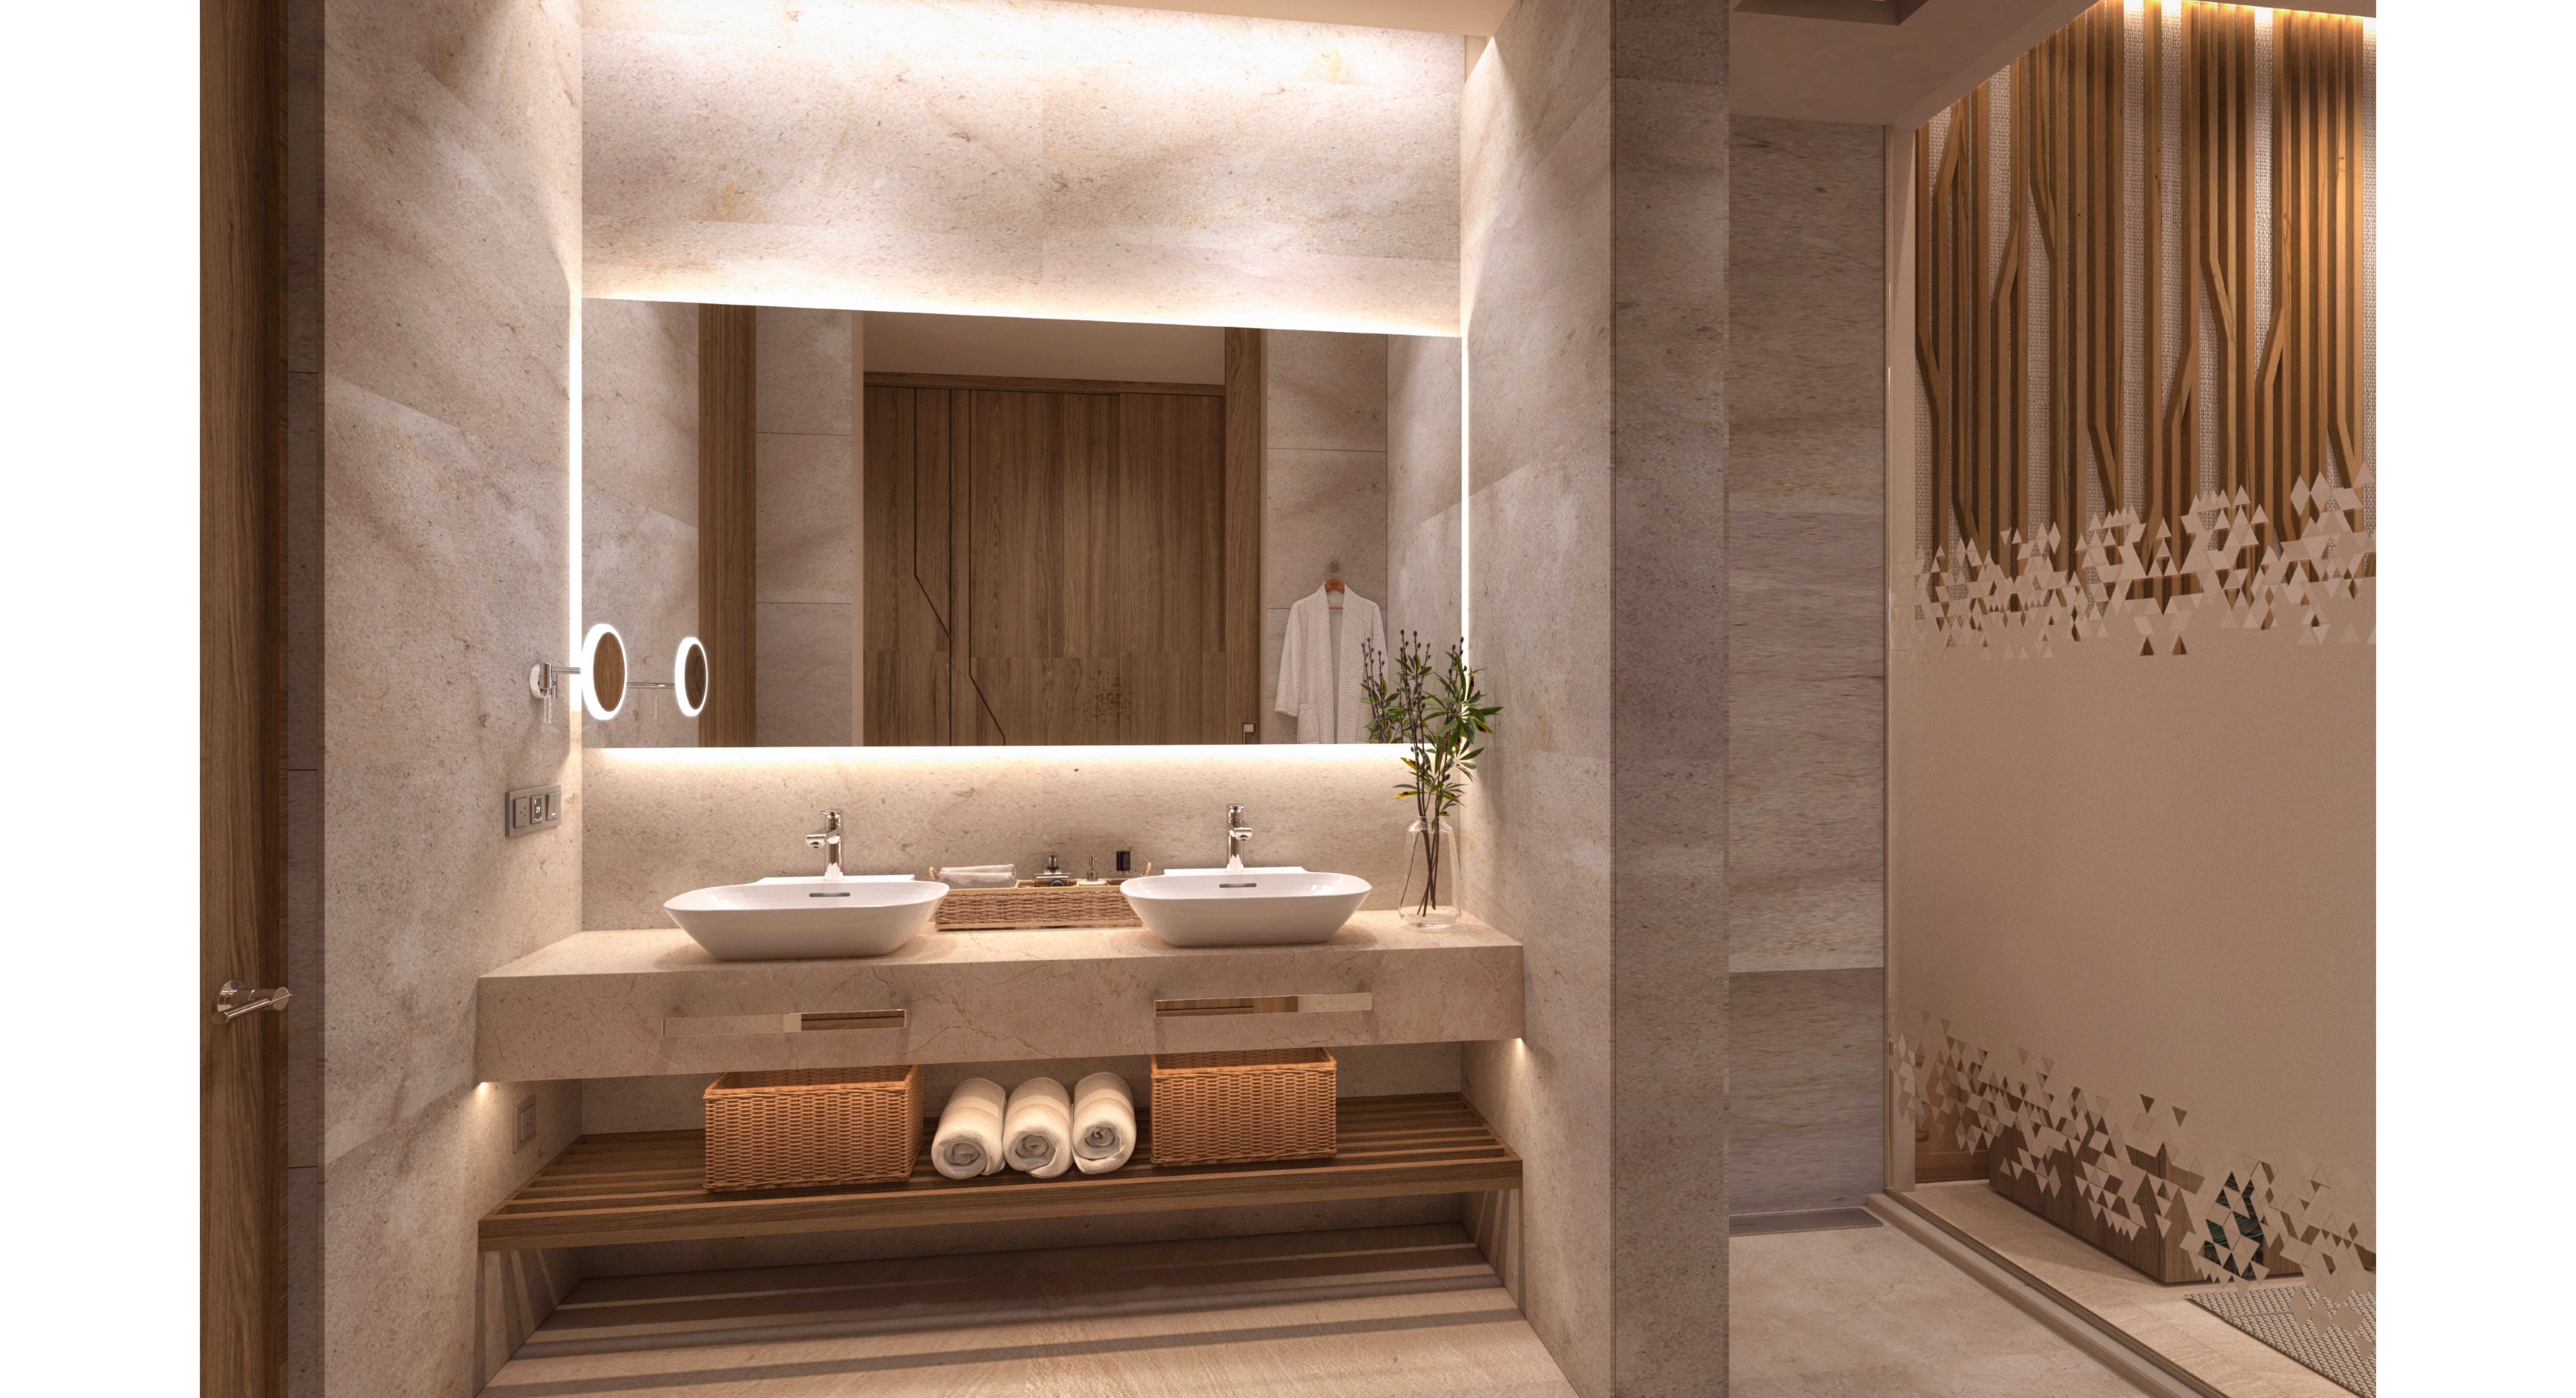 Showing slide 4 of 4 in image gallery, Junior Suite - bathroom (artist rendering)